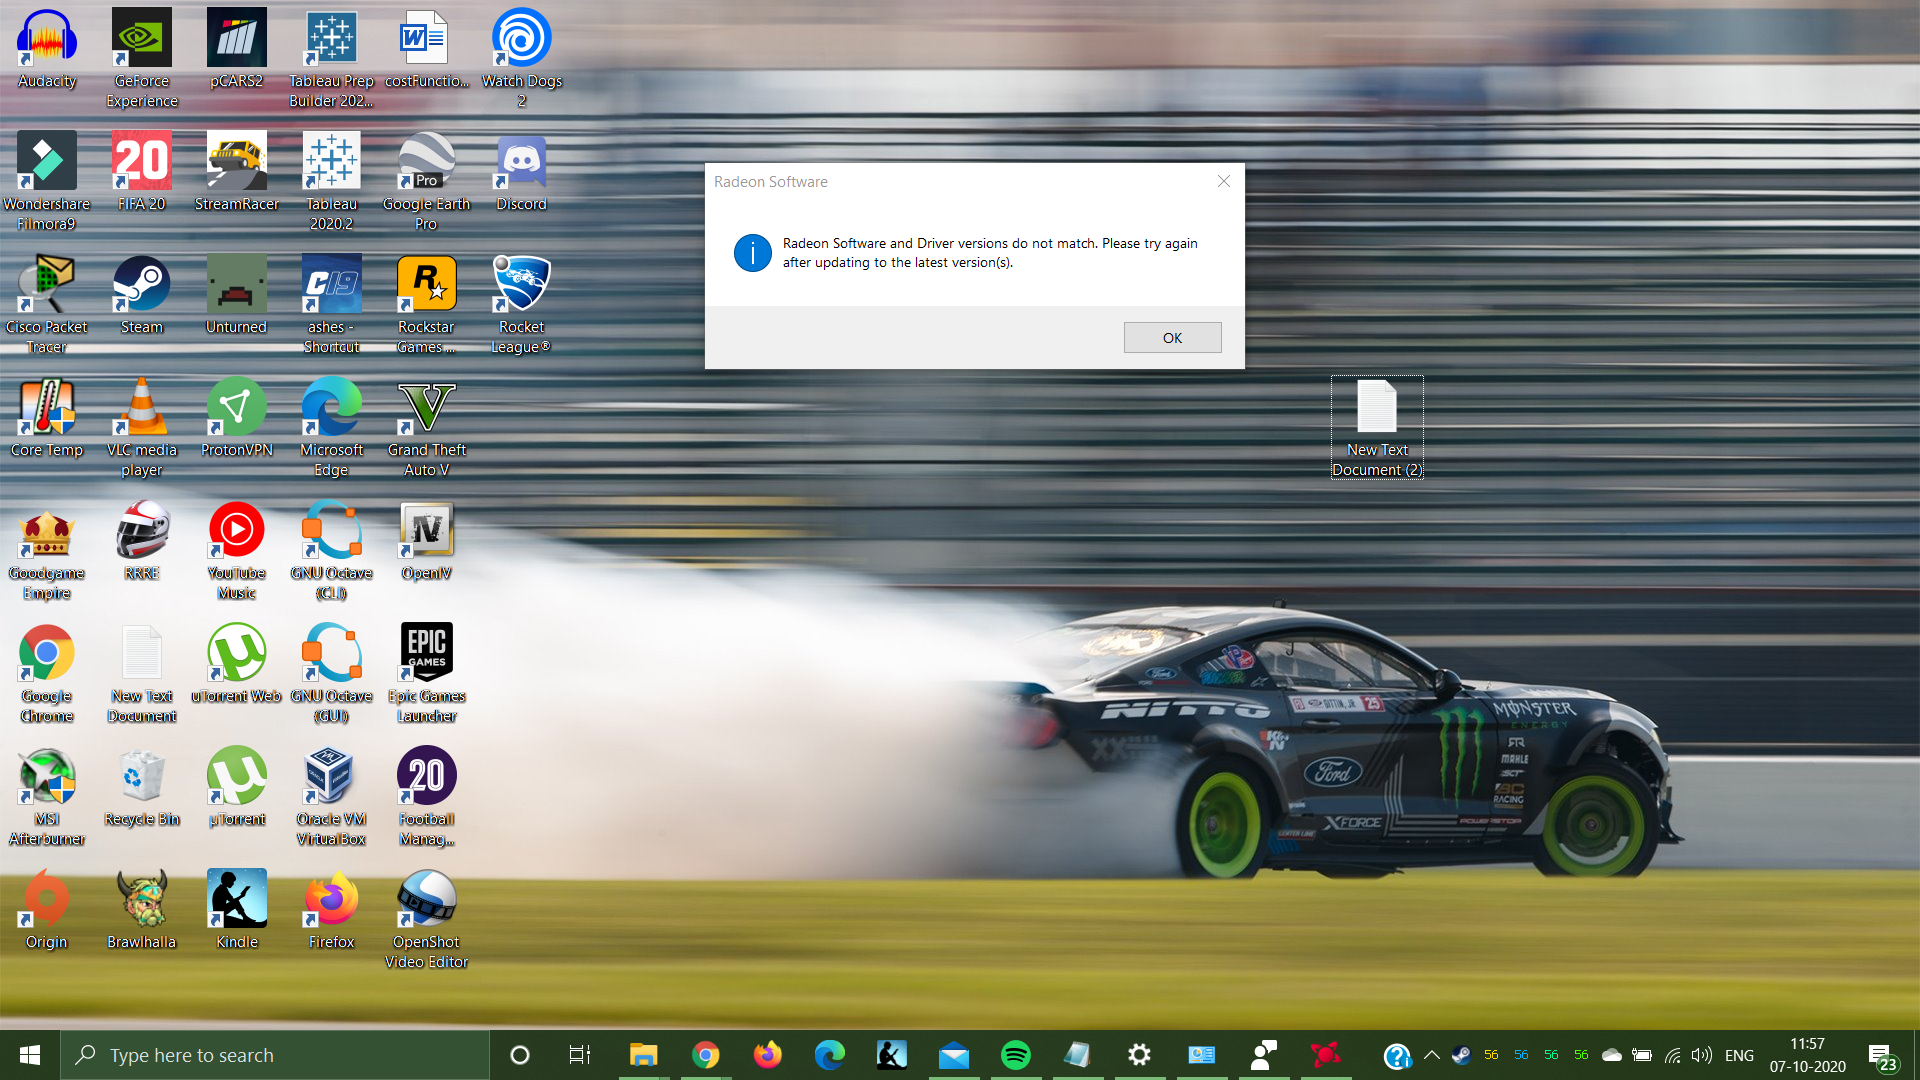 Inconsistent fps while gaming, and not due to overheating 3f58e46a-1dc8-4225-b64b-8d9d2e094c6d?upload=true.png